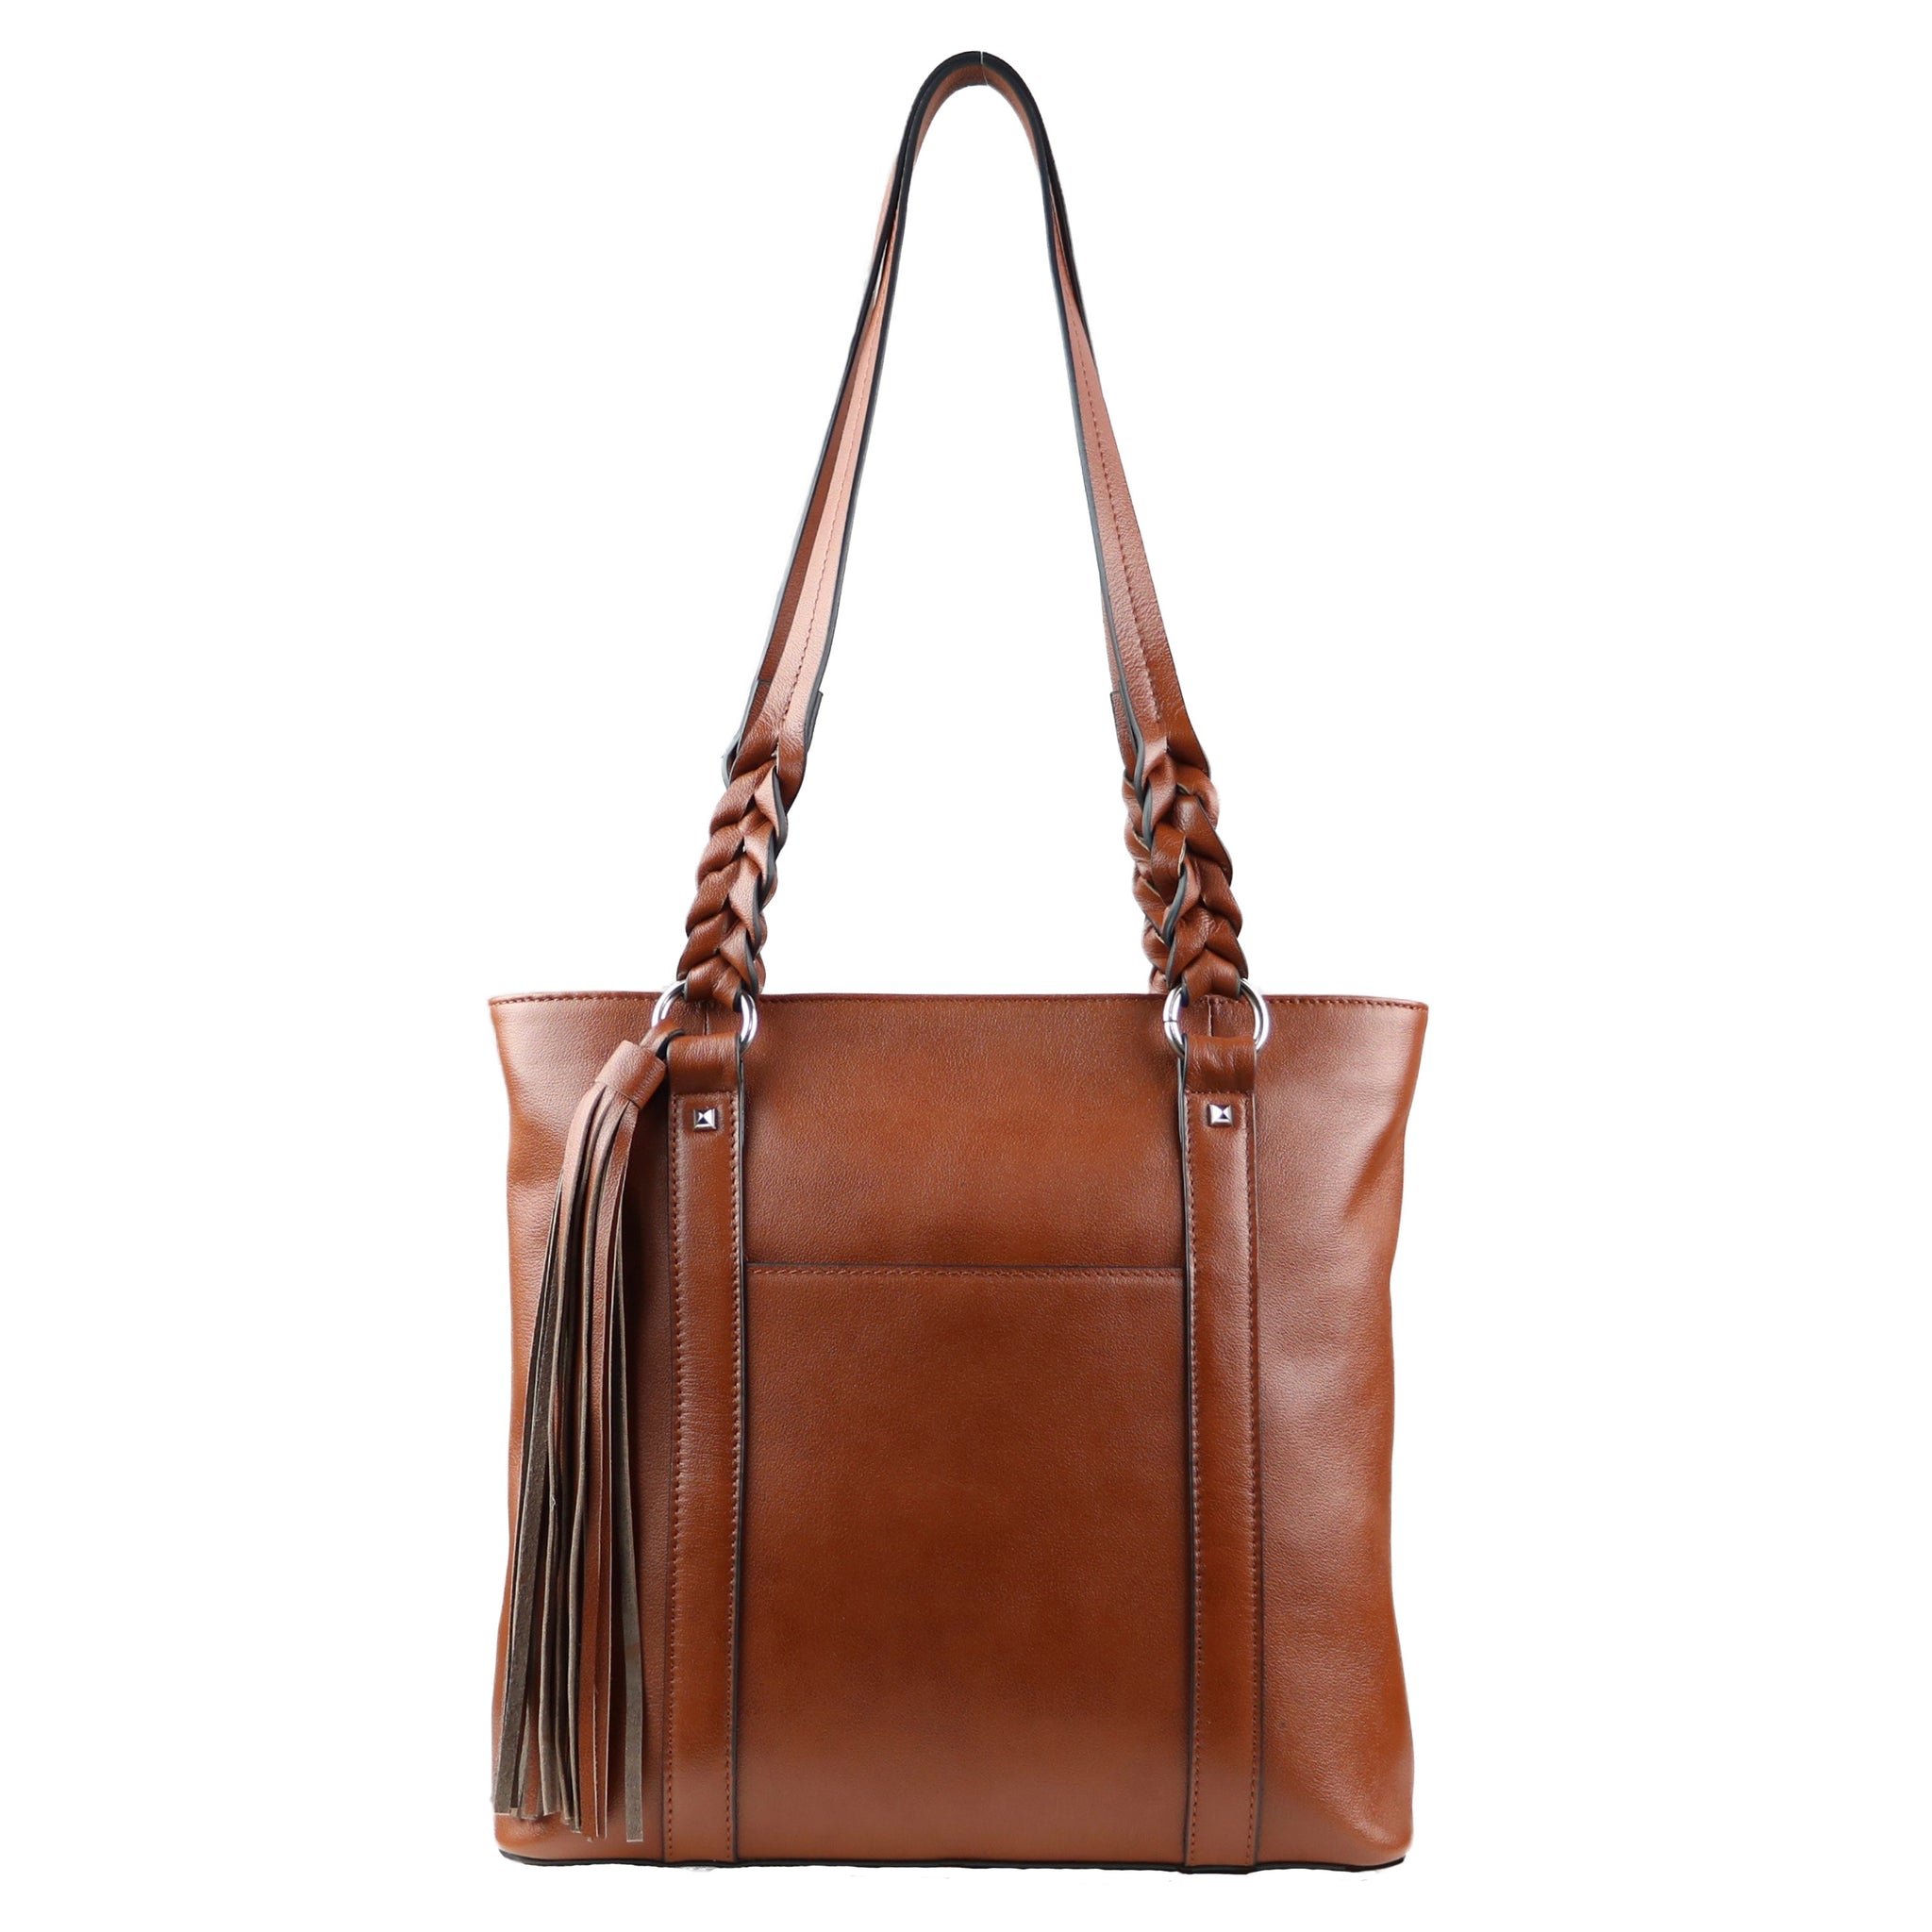 Concealed Carry Bella tote with elegantly braided leather handles and silver toned hardware with ambidextrous locking zippers on the back  Front